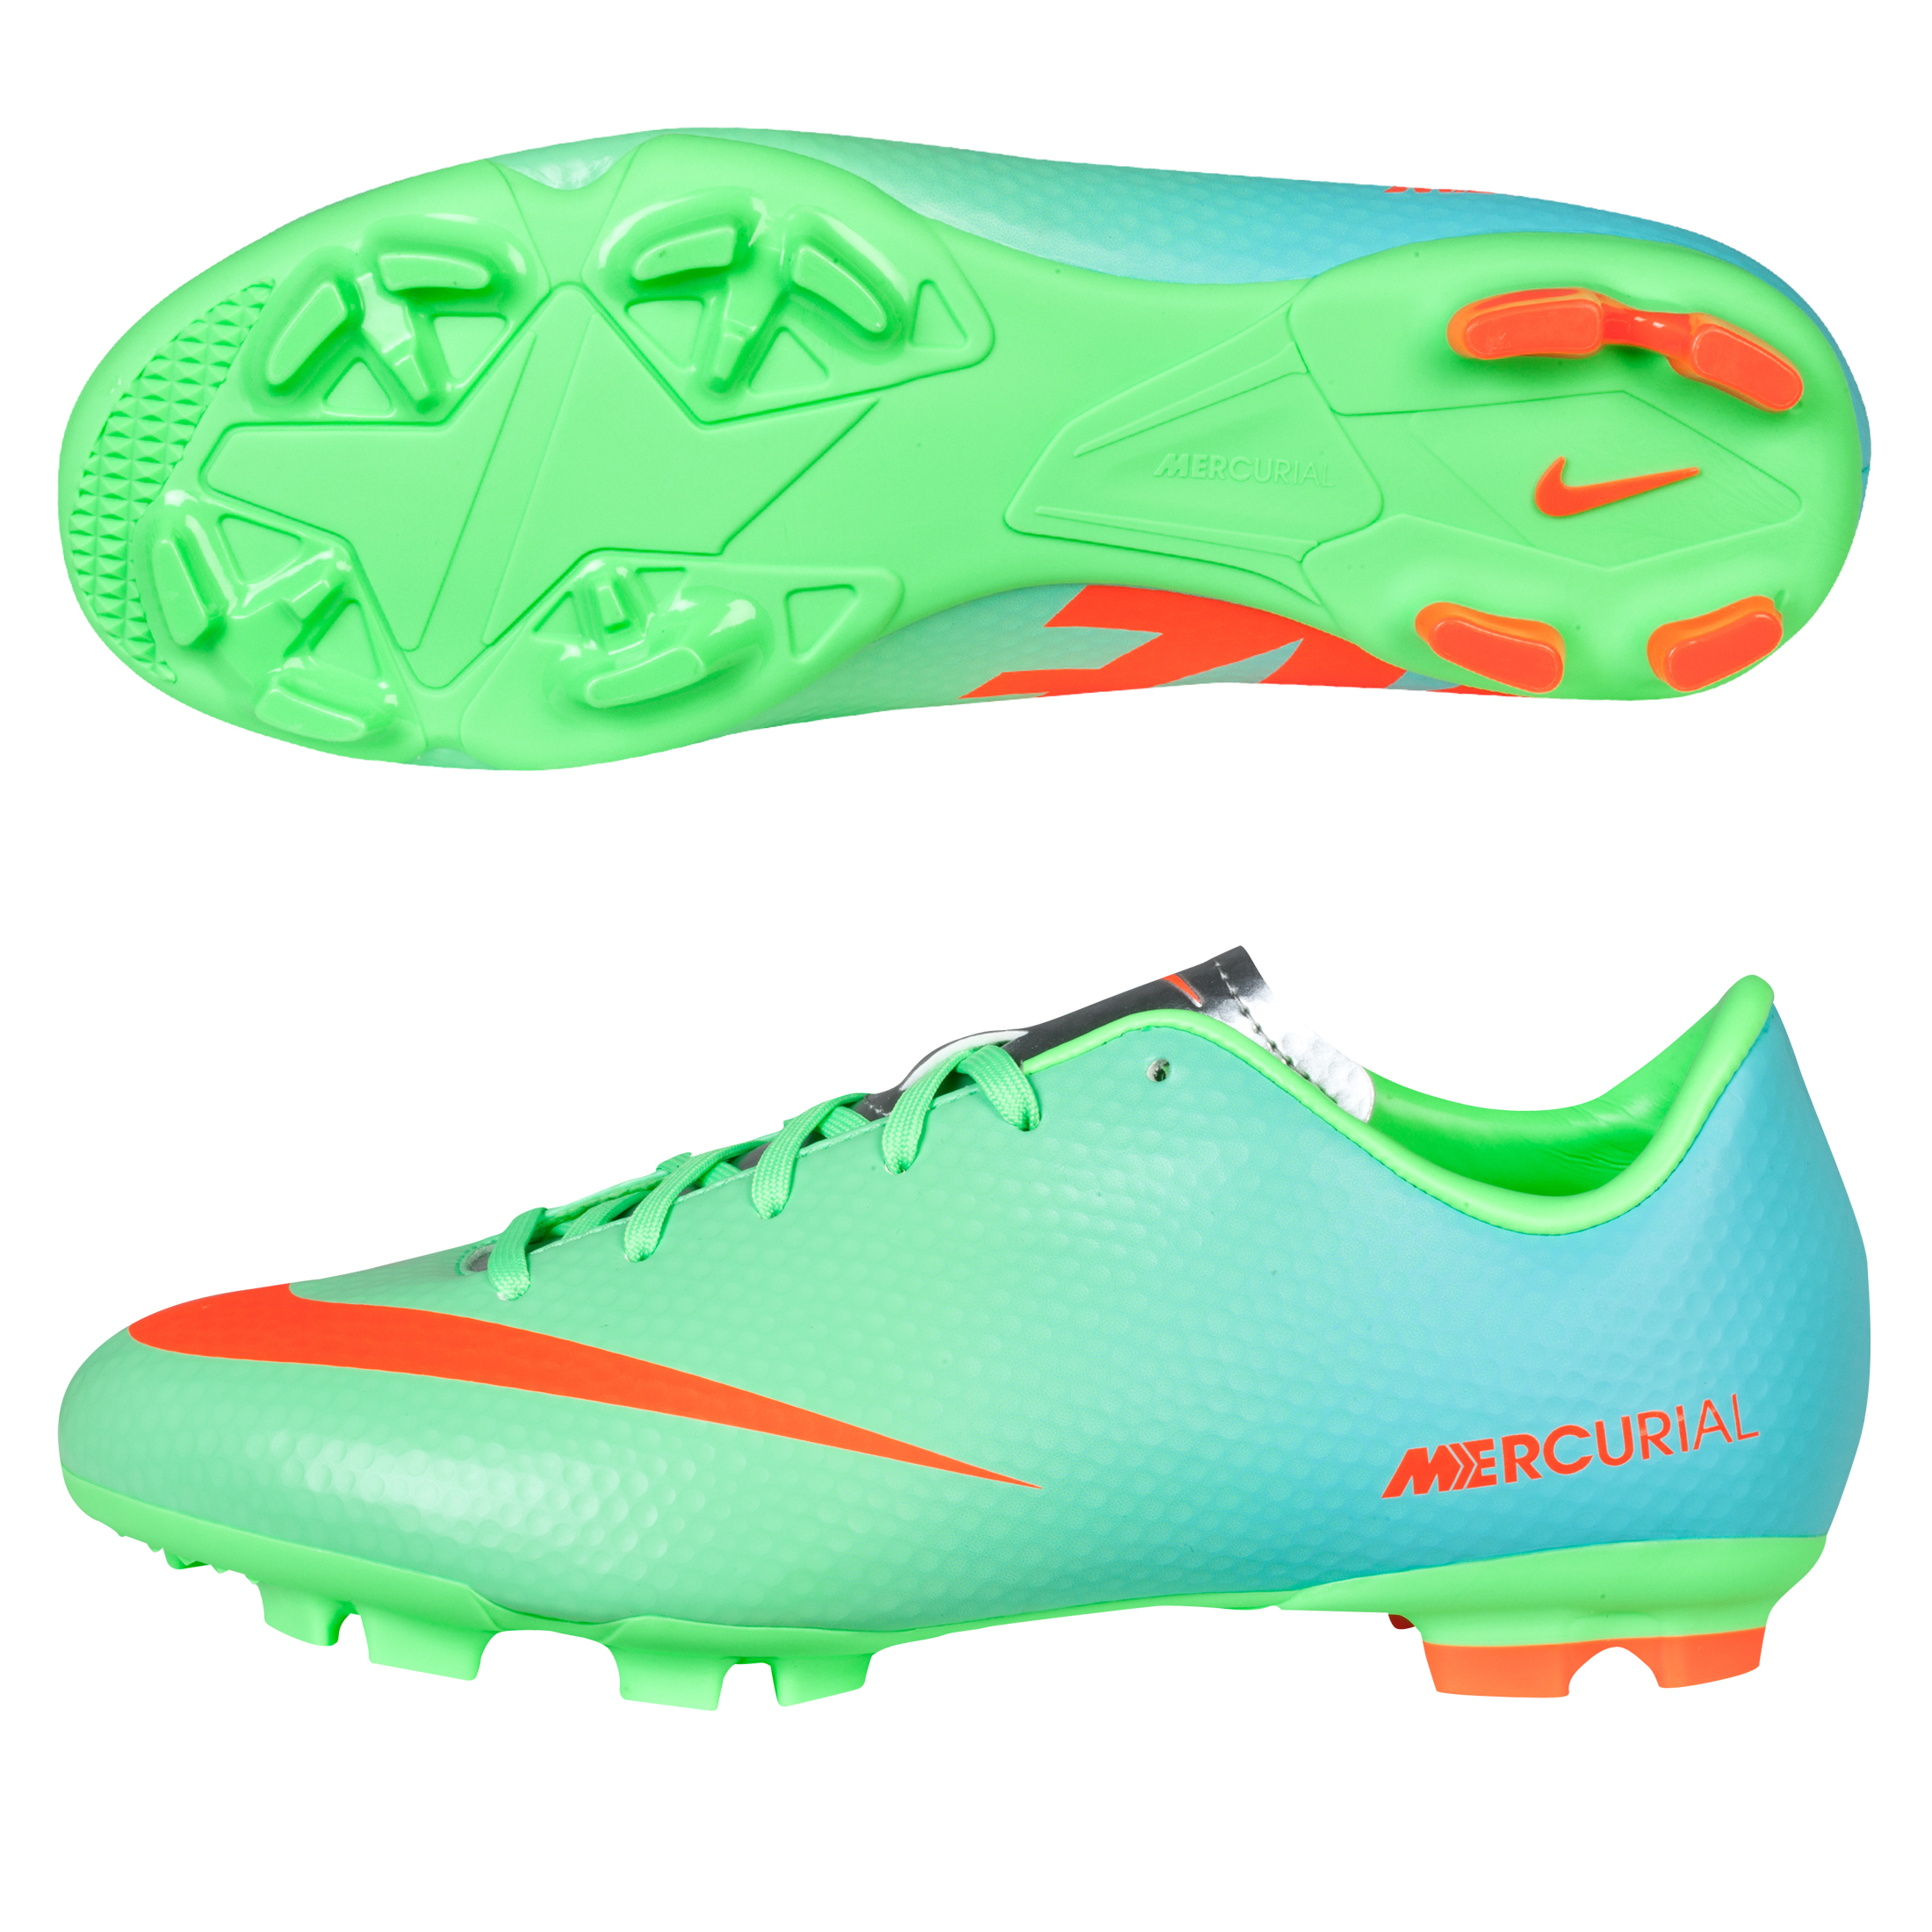 Nike Mercurial Victory IV Firm Ground Football Boots - Kids Green